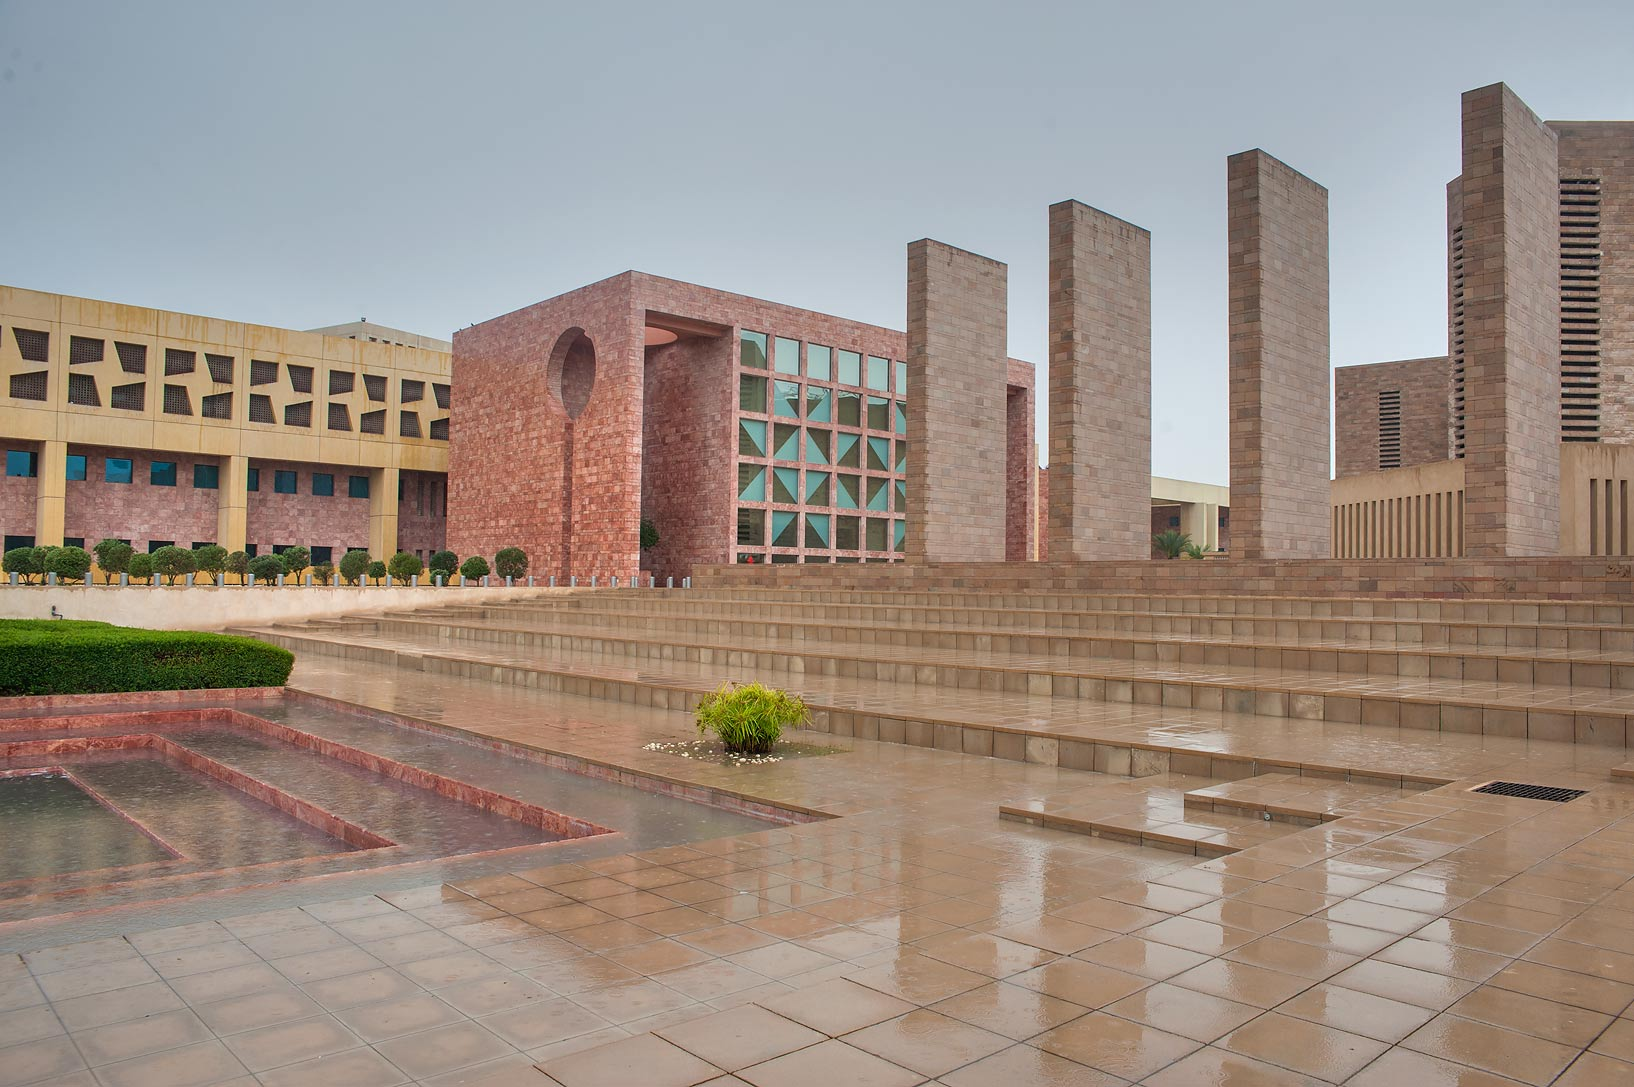 Stone steps between Texas A&M and Carnegie...City campus at rain. Doha, Qatar